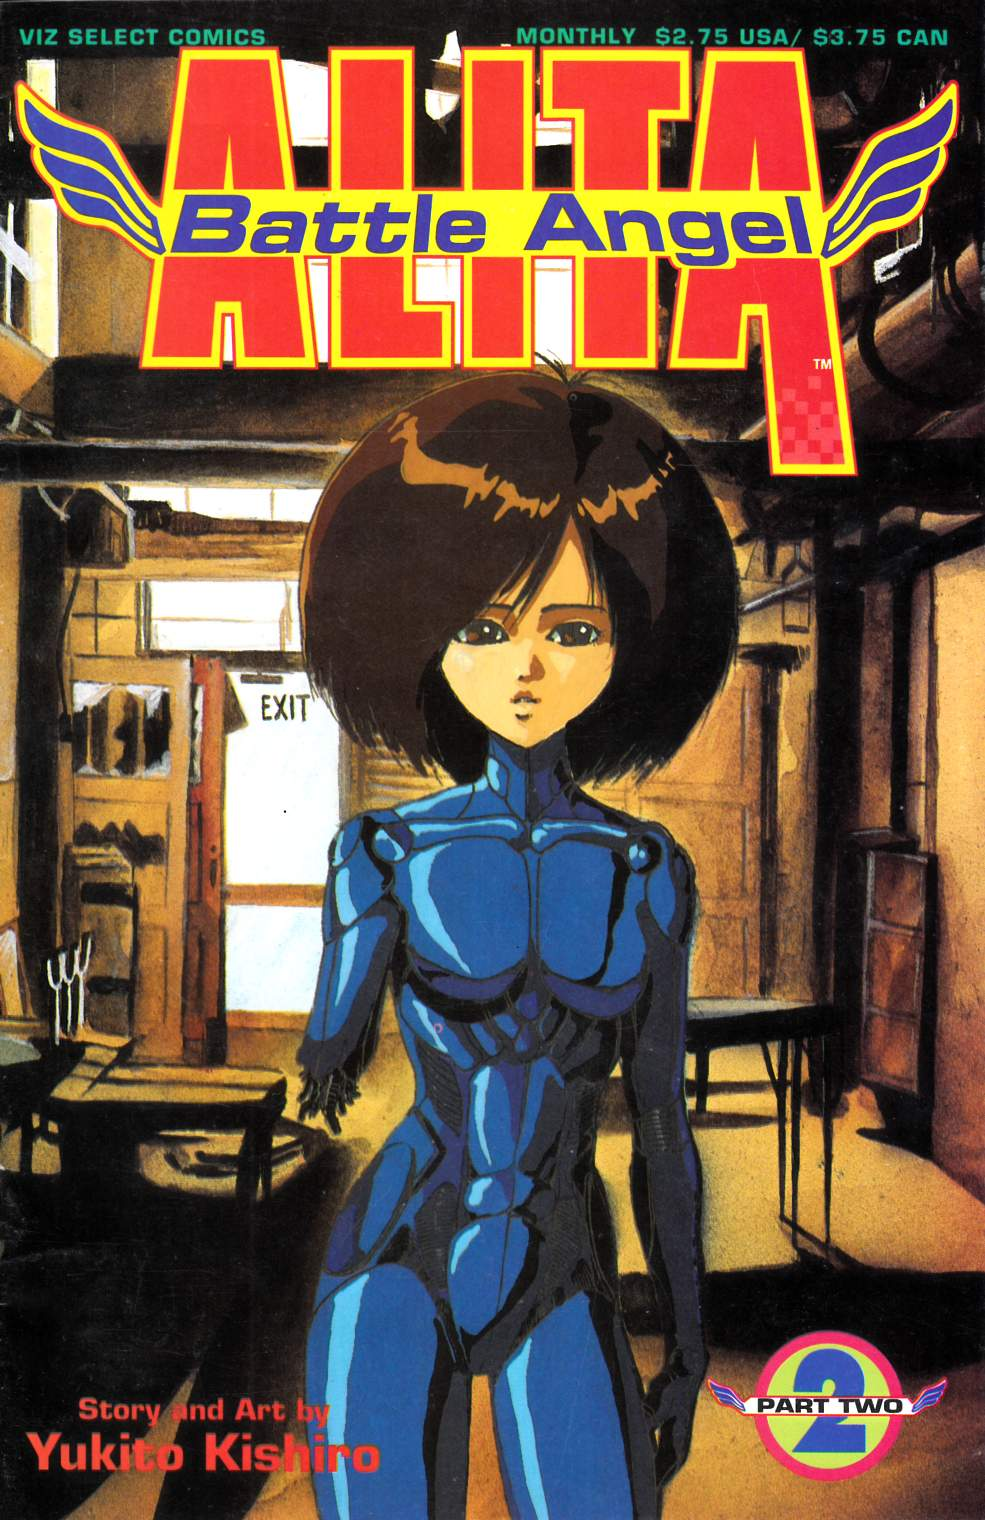 Battle Angel Alita Part 2 #2 Very Good Plus (4.5) [Viz Comic]